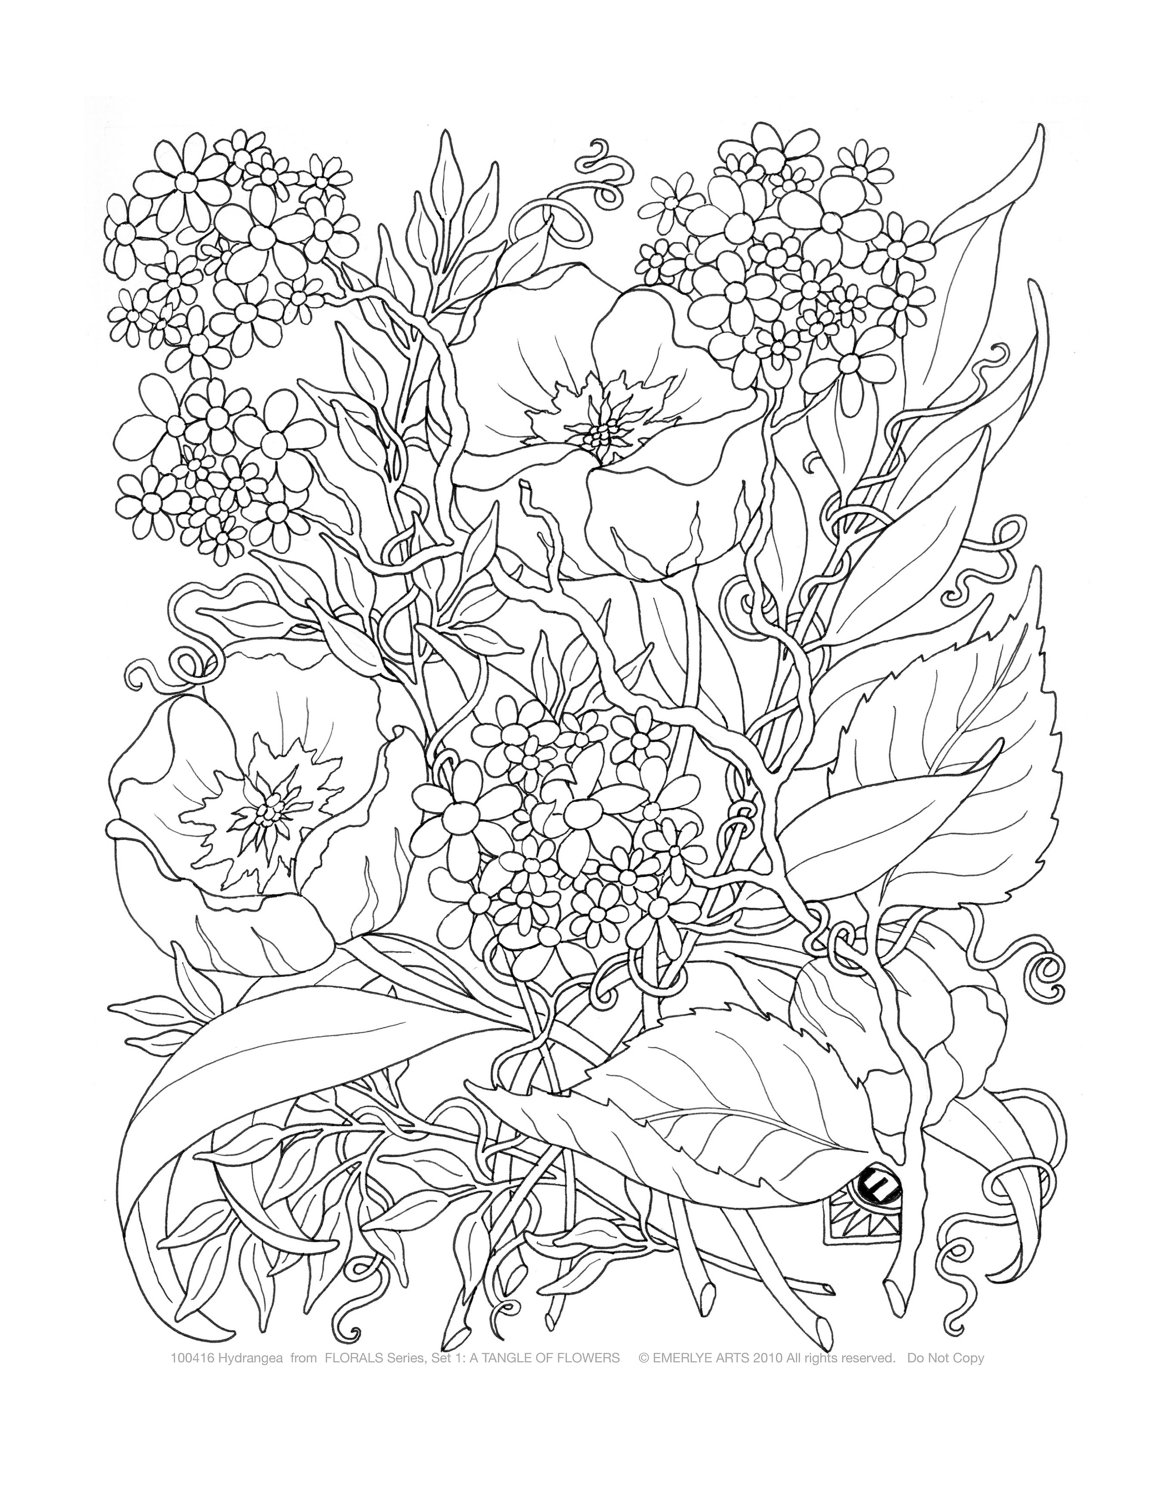 hard flower coloring pages adult coloring a tangle of flowers set of 8 by emerlyearts pages hard flower coloring